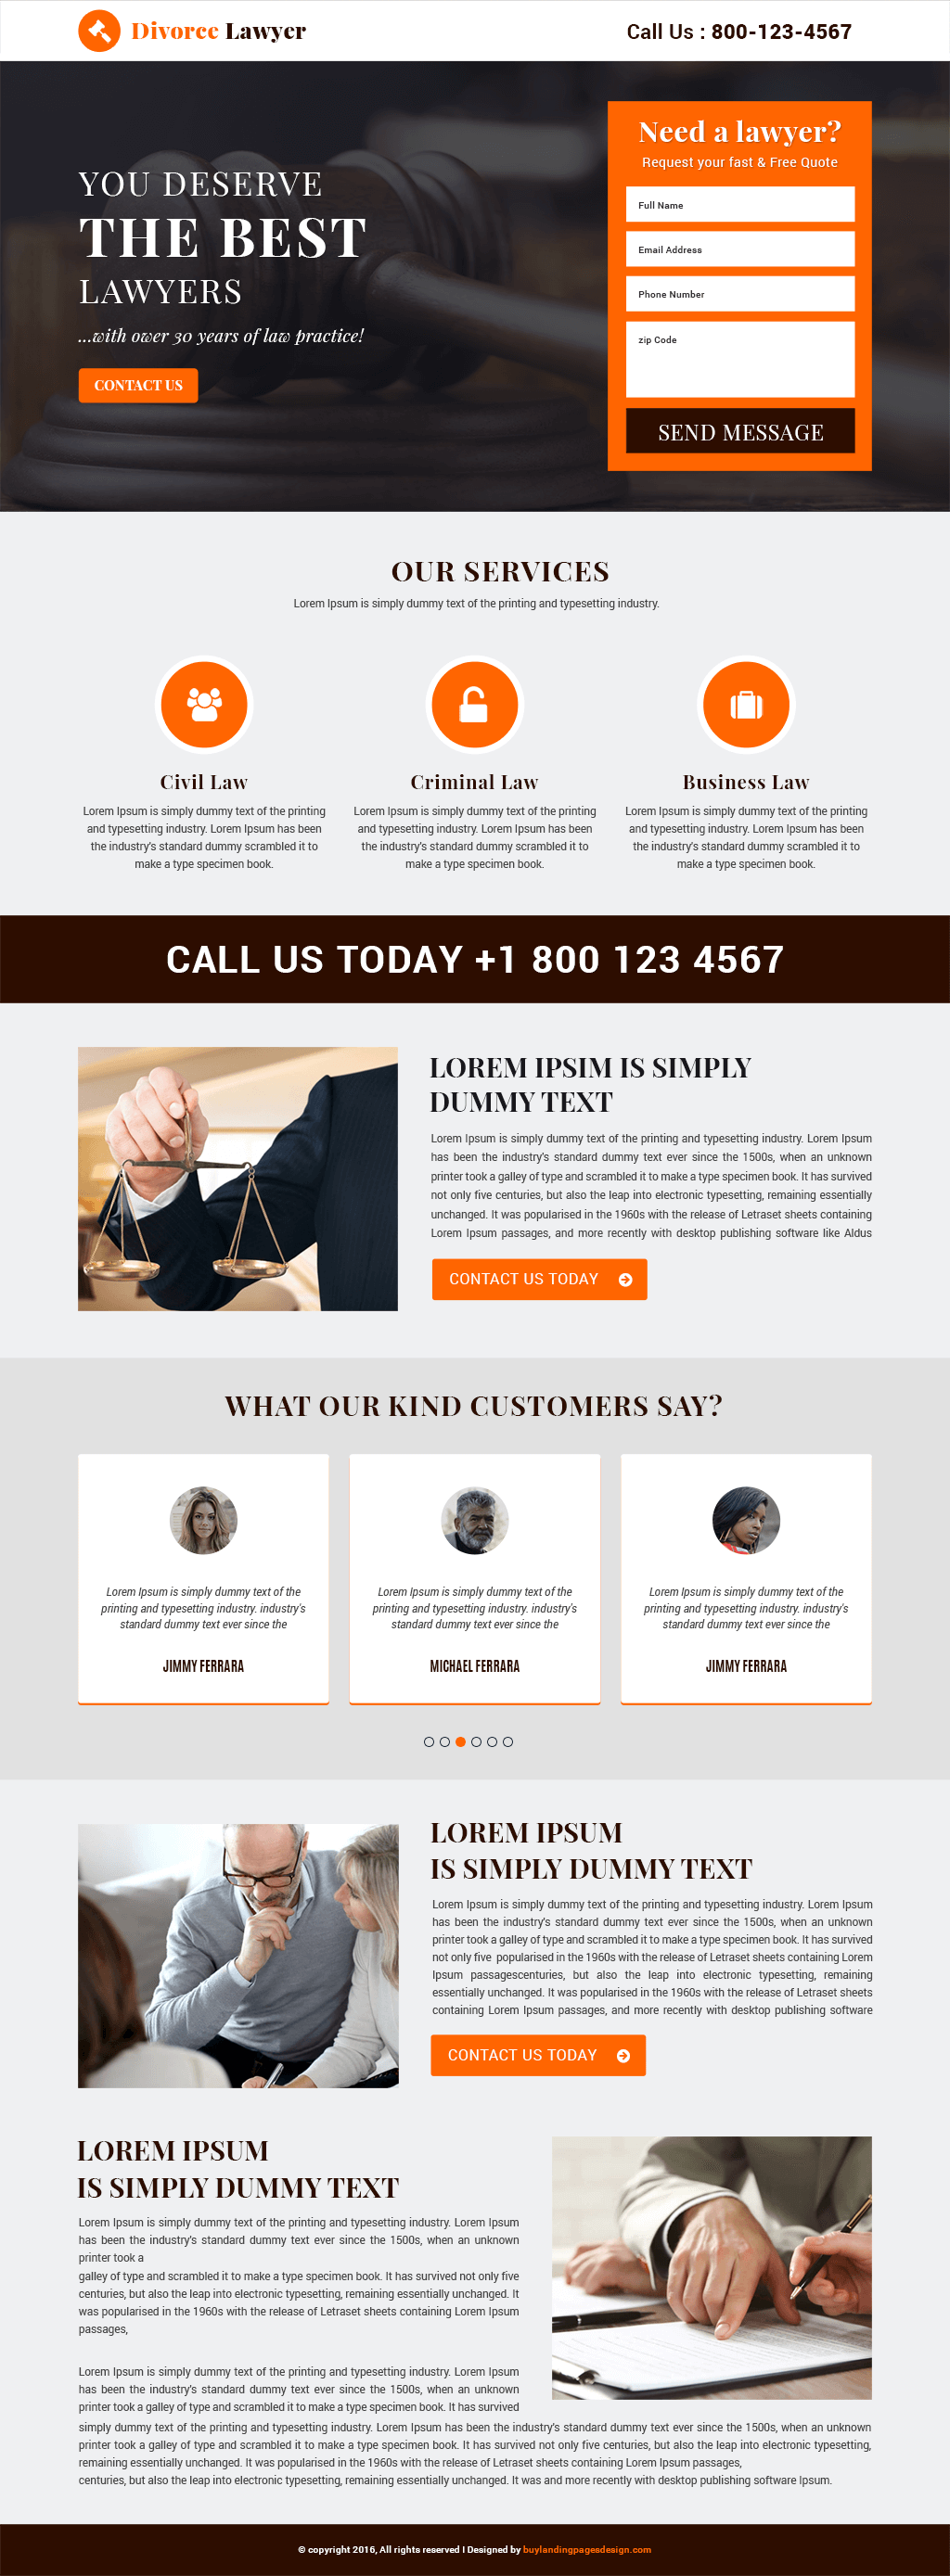 Divorce Lawyer Responsive Landing Page Template